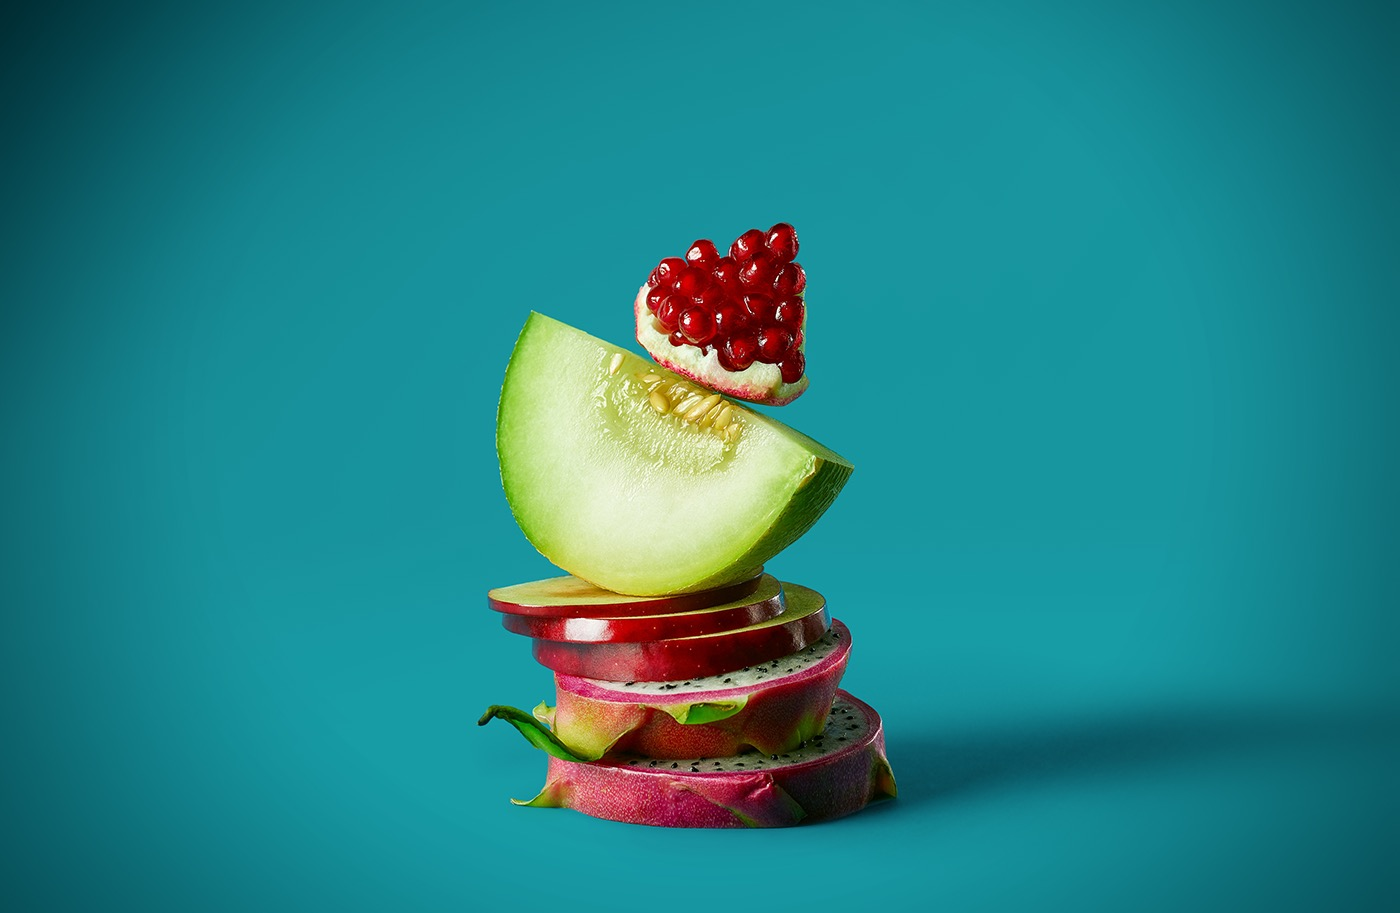 Food Photography & Retouching Ideas For Inspiration (3)